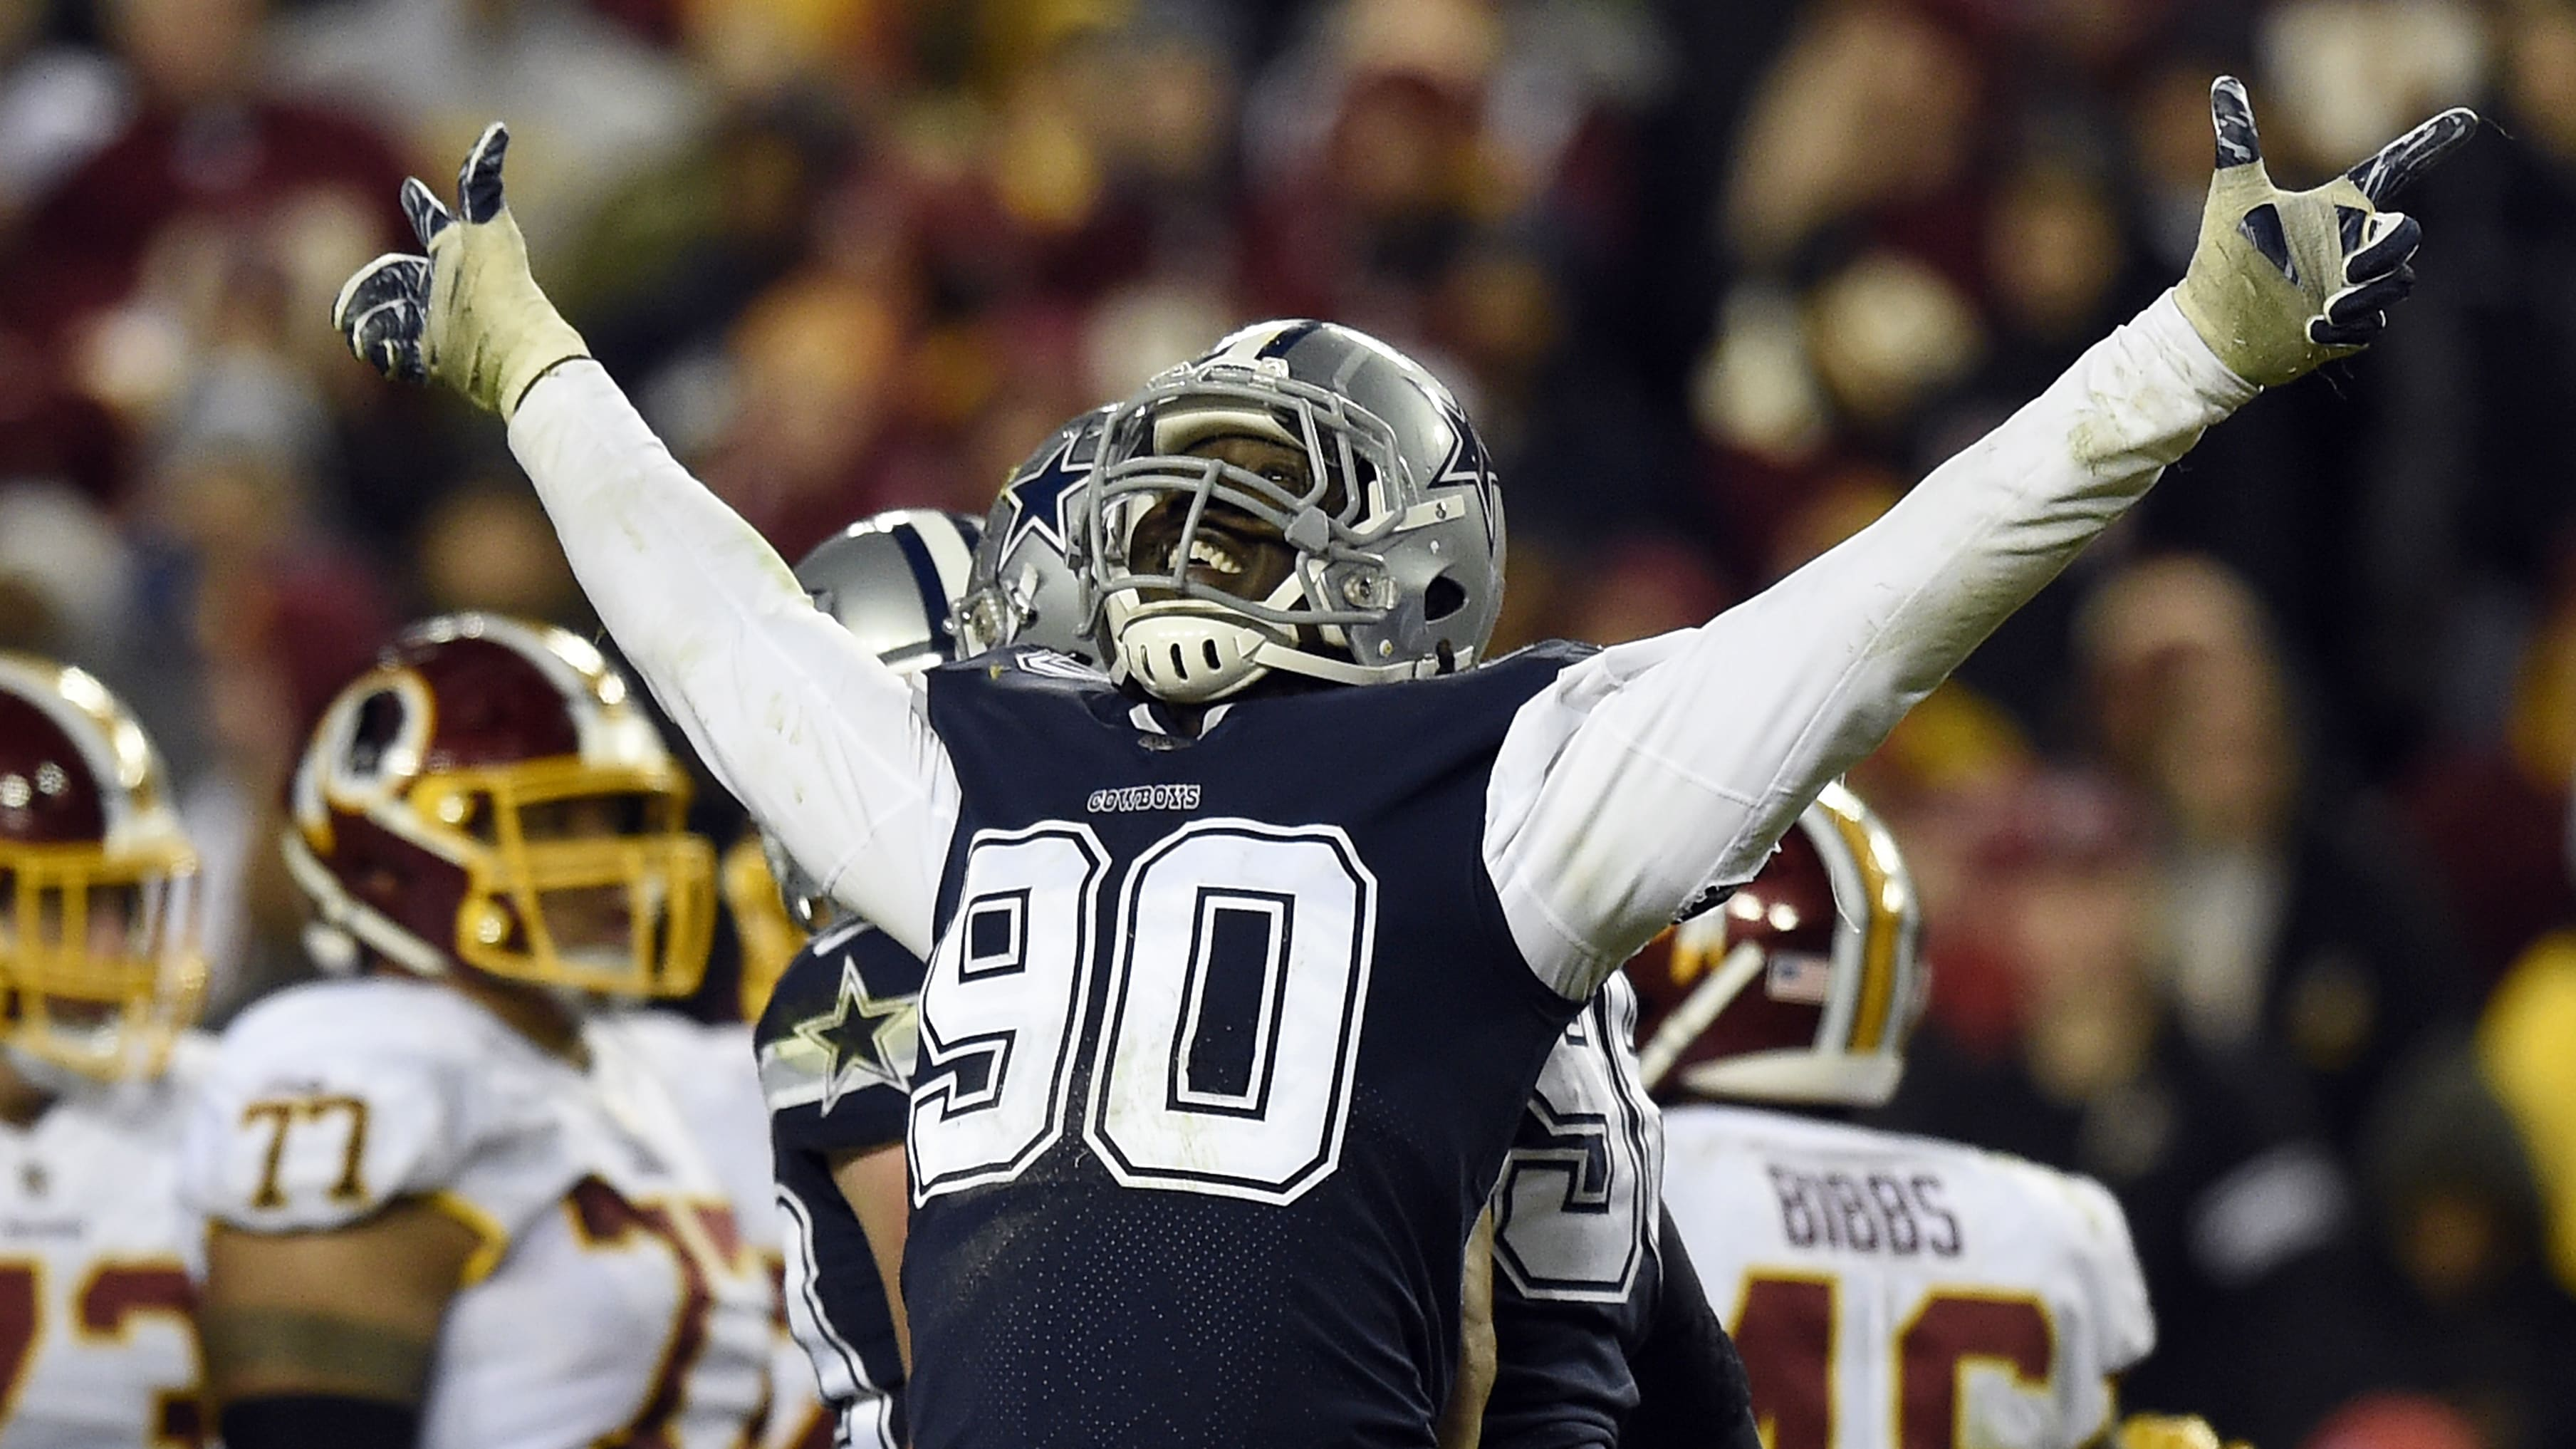 LANDOVER, MD - OCTOBER 21: Defensive end Demarcus Lawrence #90 of the Dallas Cowboys reacts after a play in the fourth quarter against the Washington Redskins at FedExField on October 21, 2018 in Landover, Maryland. (Photo by Patrick McDermott/Getty Images)